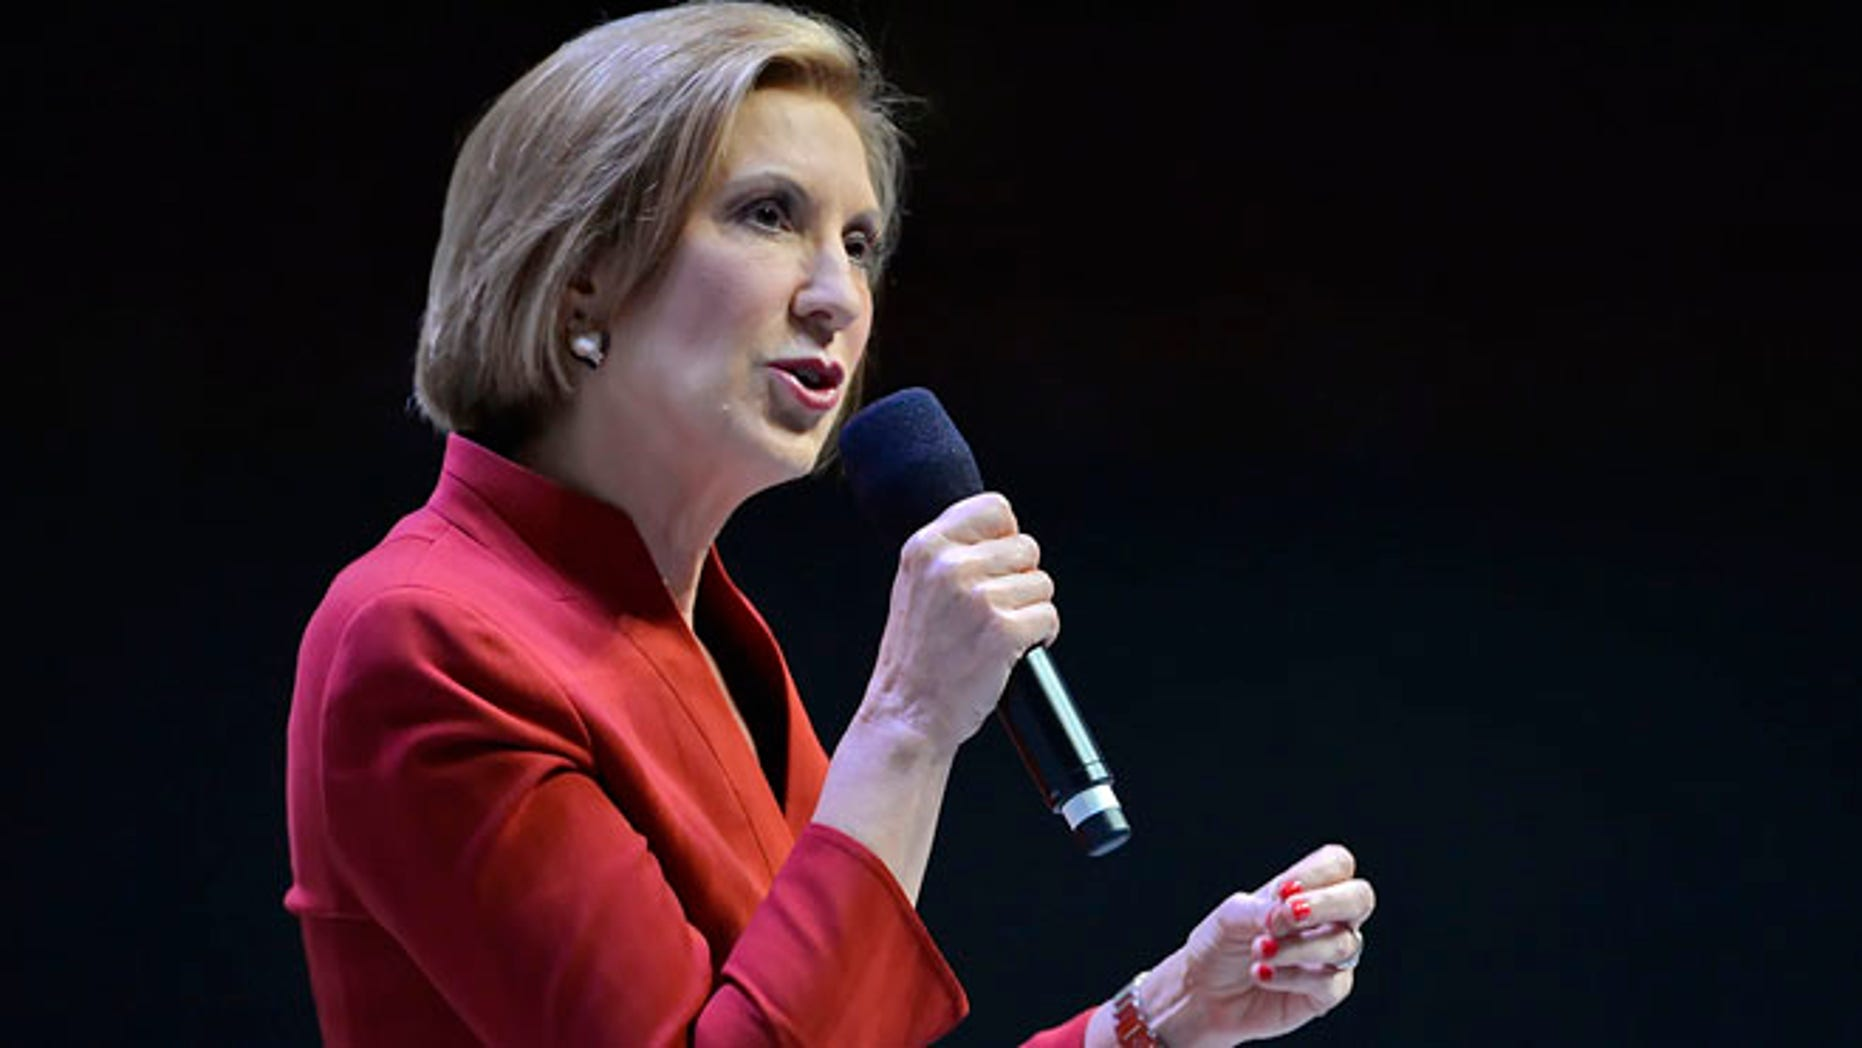 Republican presidential candidate Carly Fiorina speaks at a presidential forum sponsored by Heritage Action at the Bon Secours Wellness Arena, Friday, Sept. 18, 2015, in Greenville, S.C. (AP Photo/Richard Shiro)